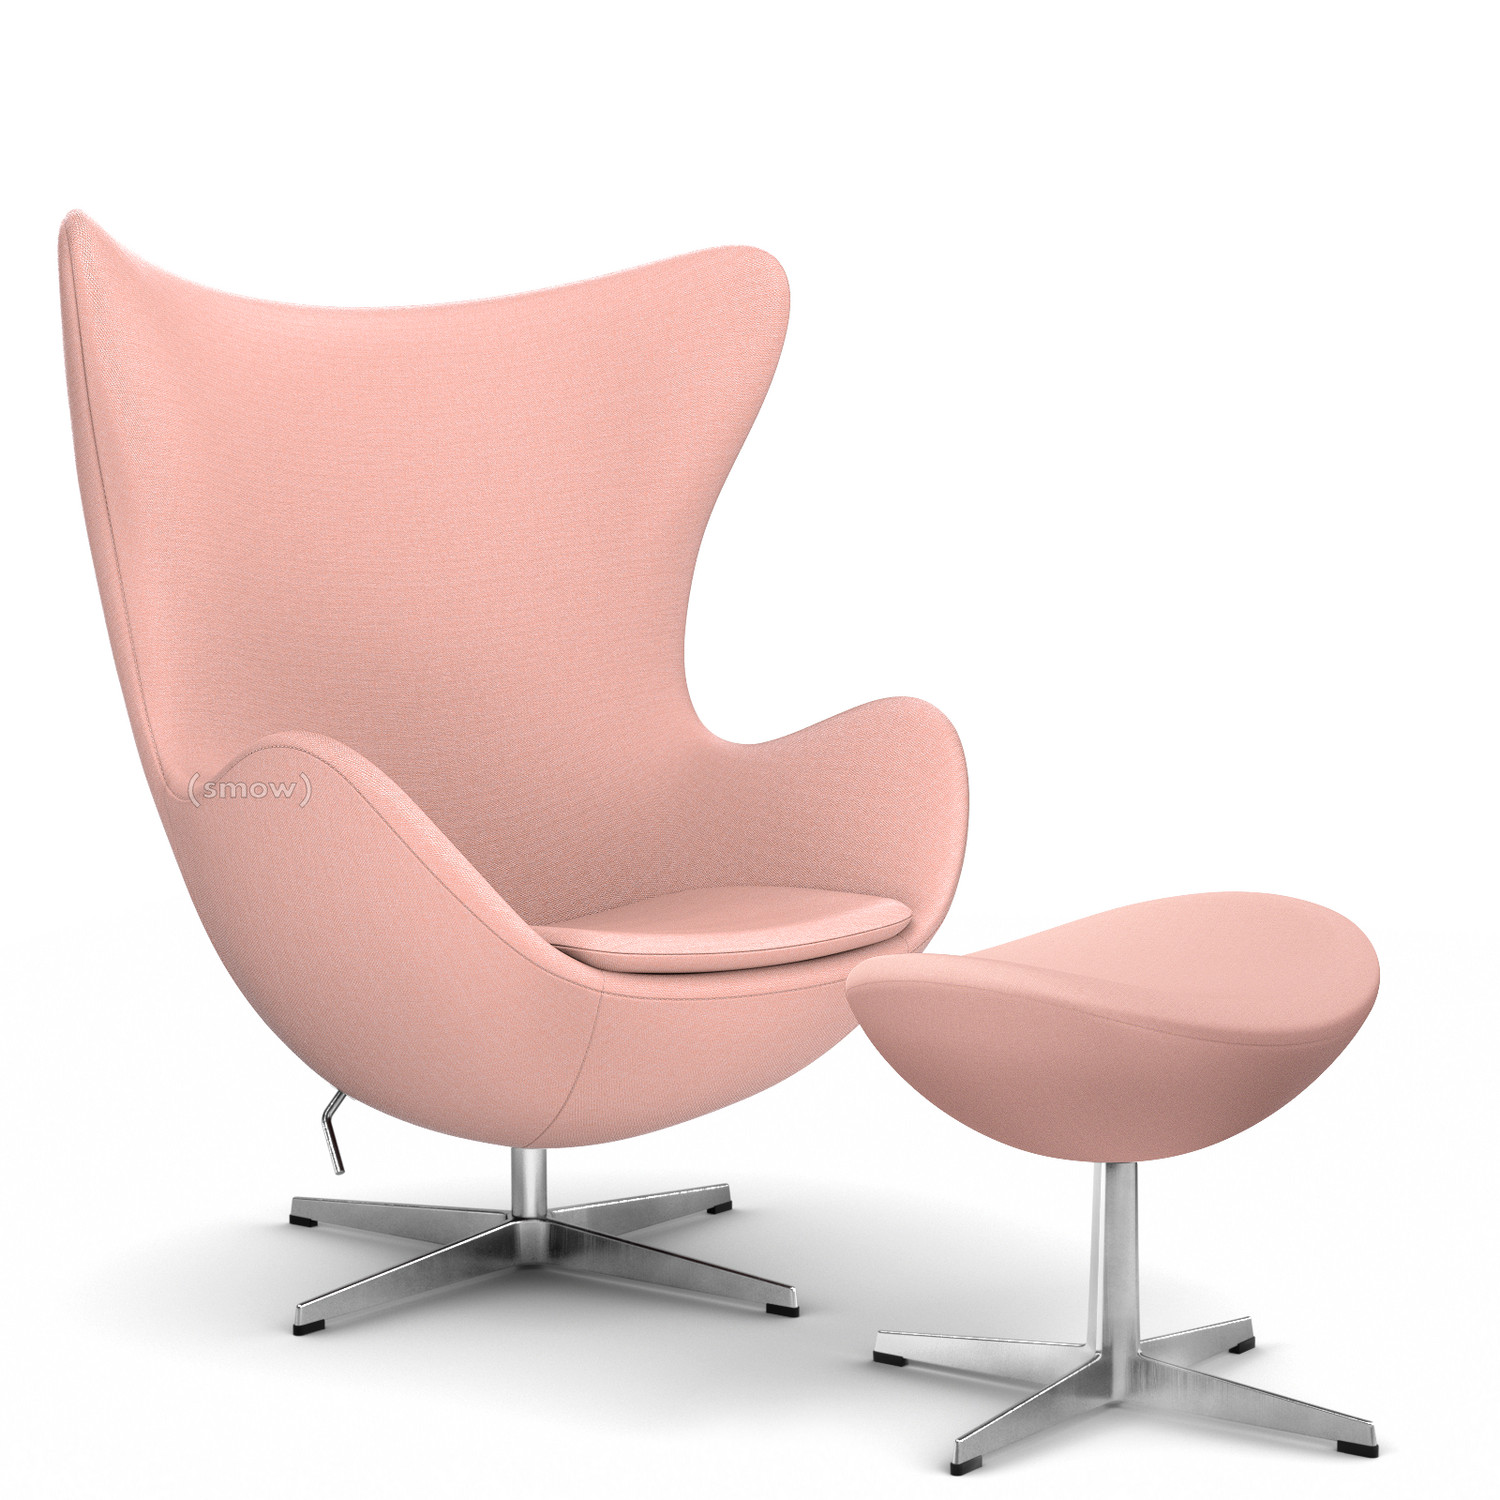 fritz hansen sessel ro 10, fritz hansen egg chair, fritz hansen colours, pink, with footstool, Design ideen